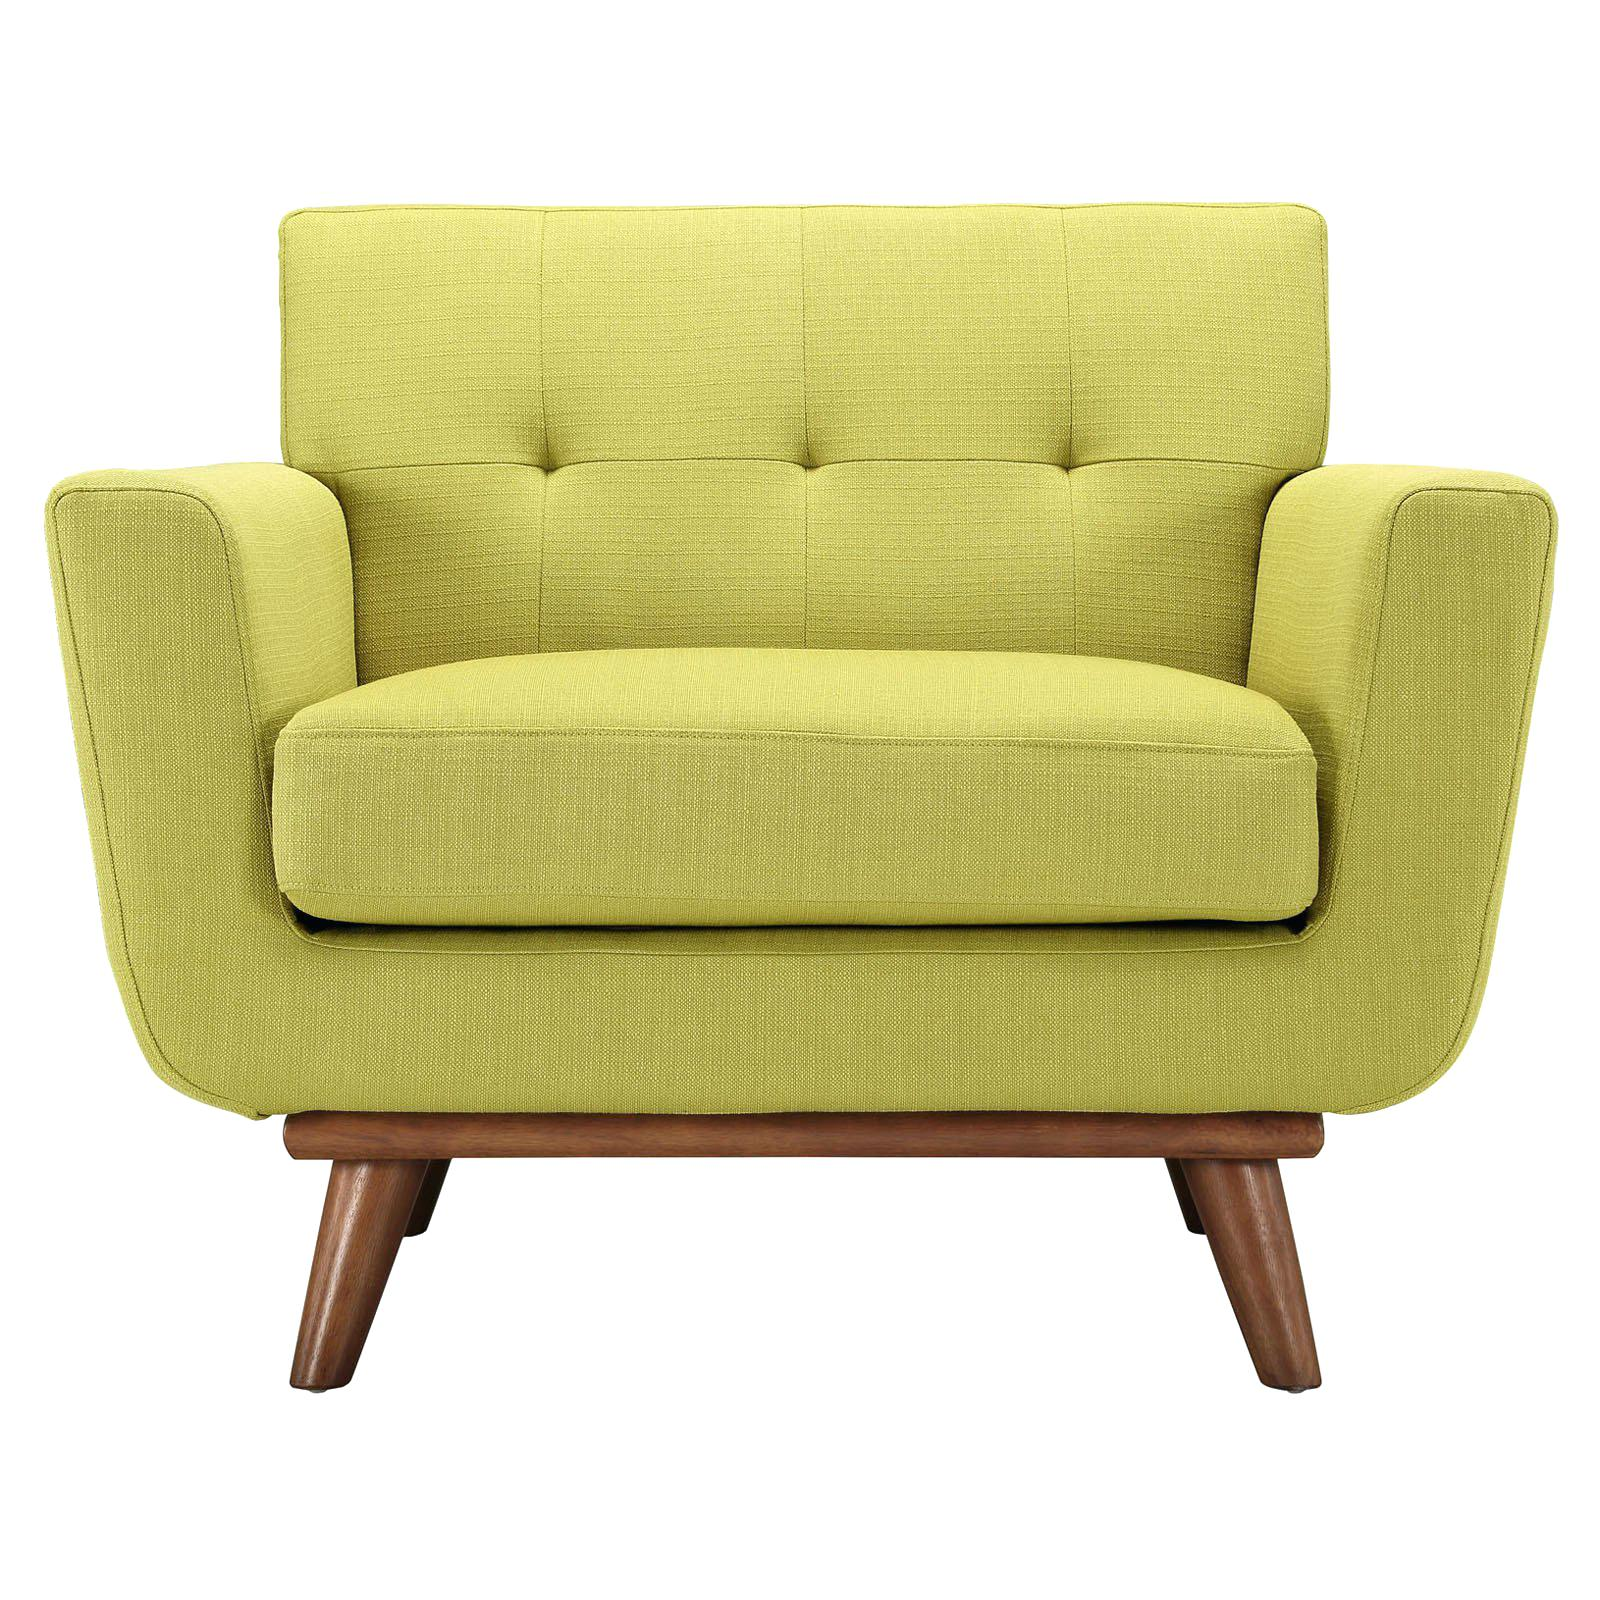 armchair caddy free remote pattern crochet classic leather accent chairs toronto gray velvet couch chair sofa thanksgiving sofas and couches ikea futon shermag glider bean bag